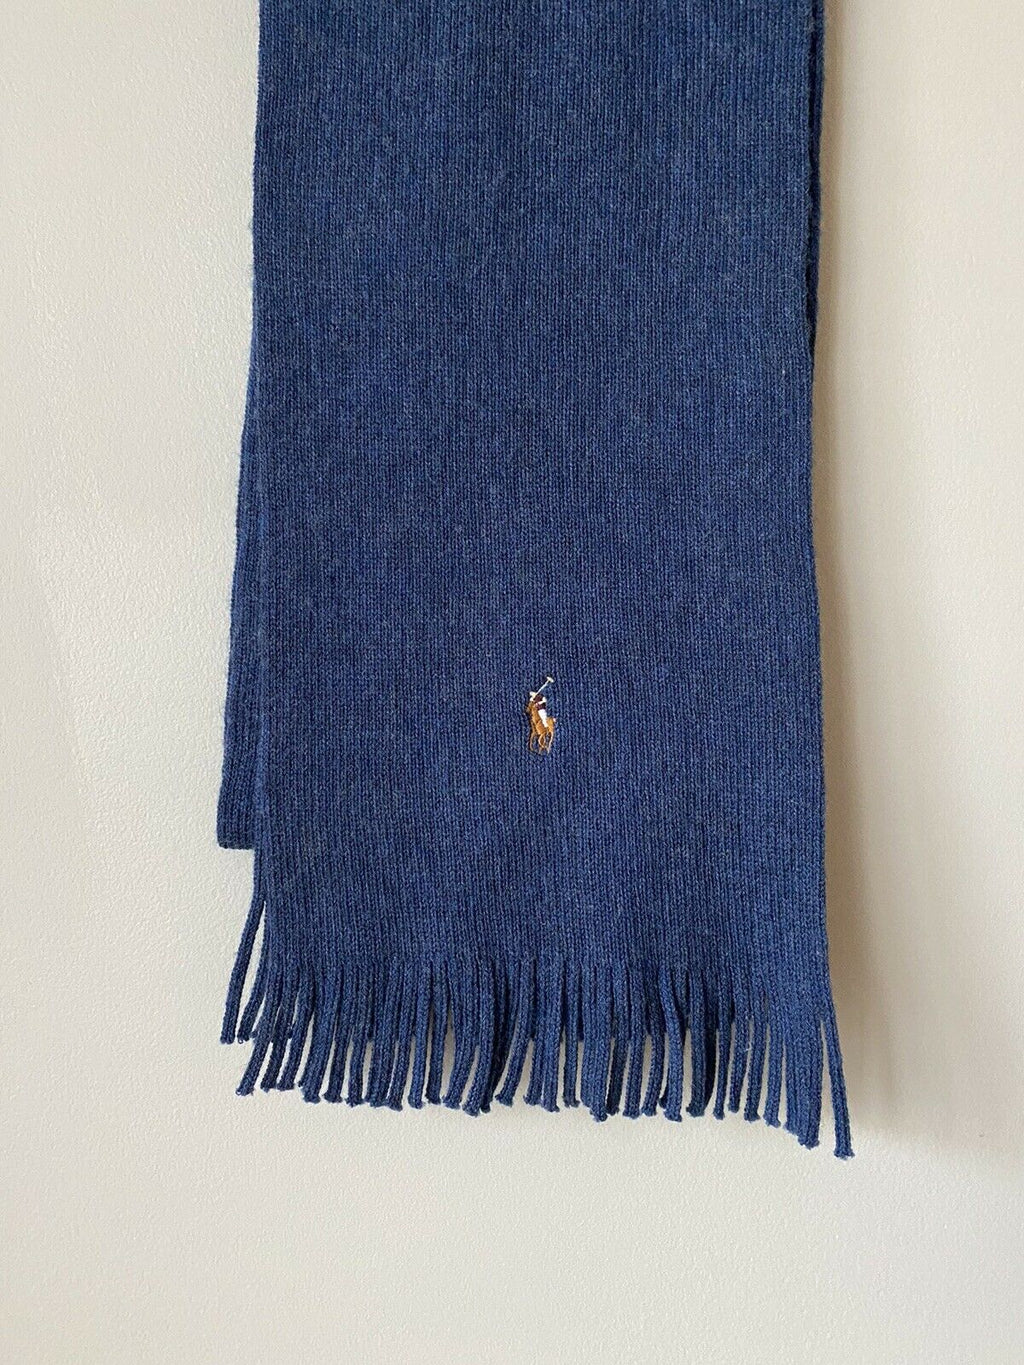 Polo Ralph Lauren Italy Women's Blue Scarf Logo Lambswool Knit Thick-Ply Fringed